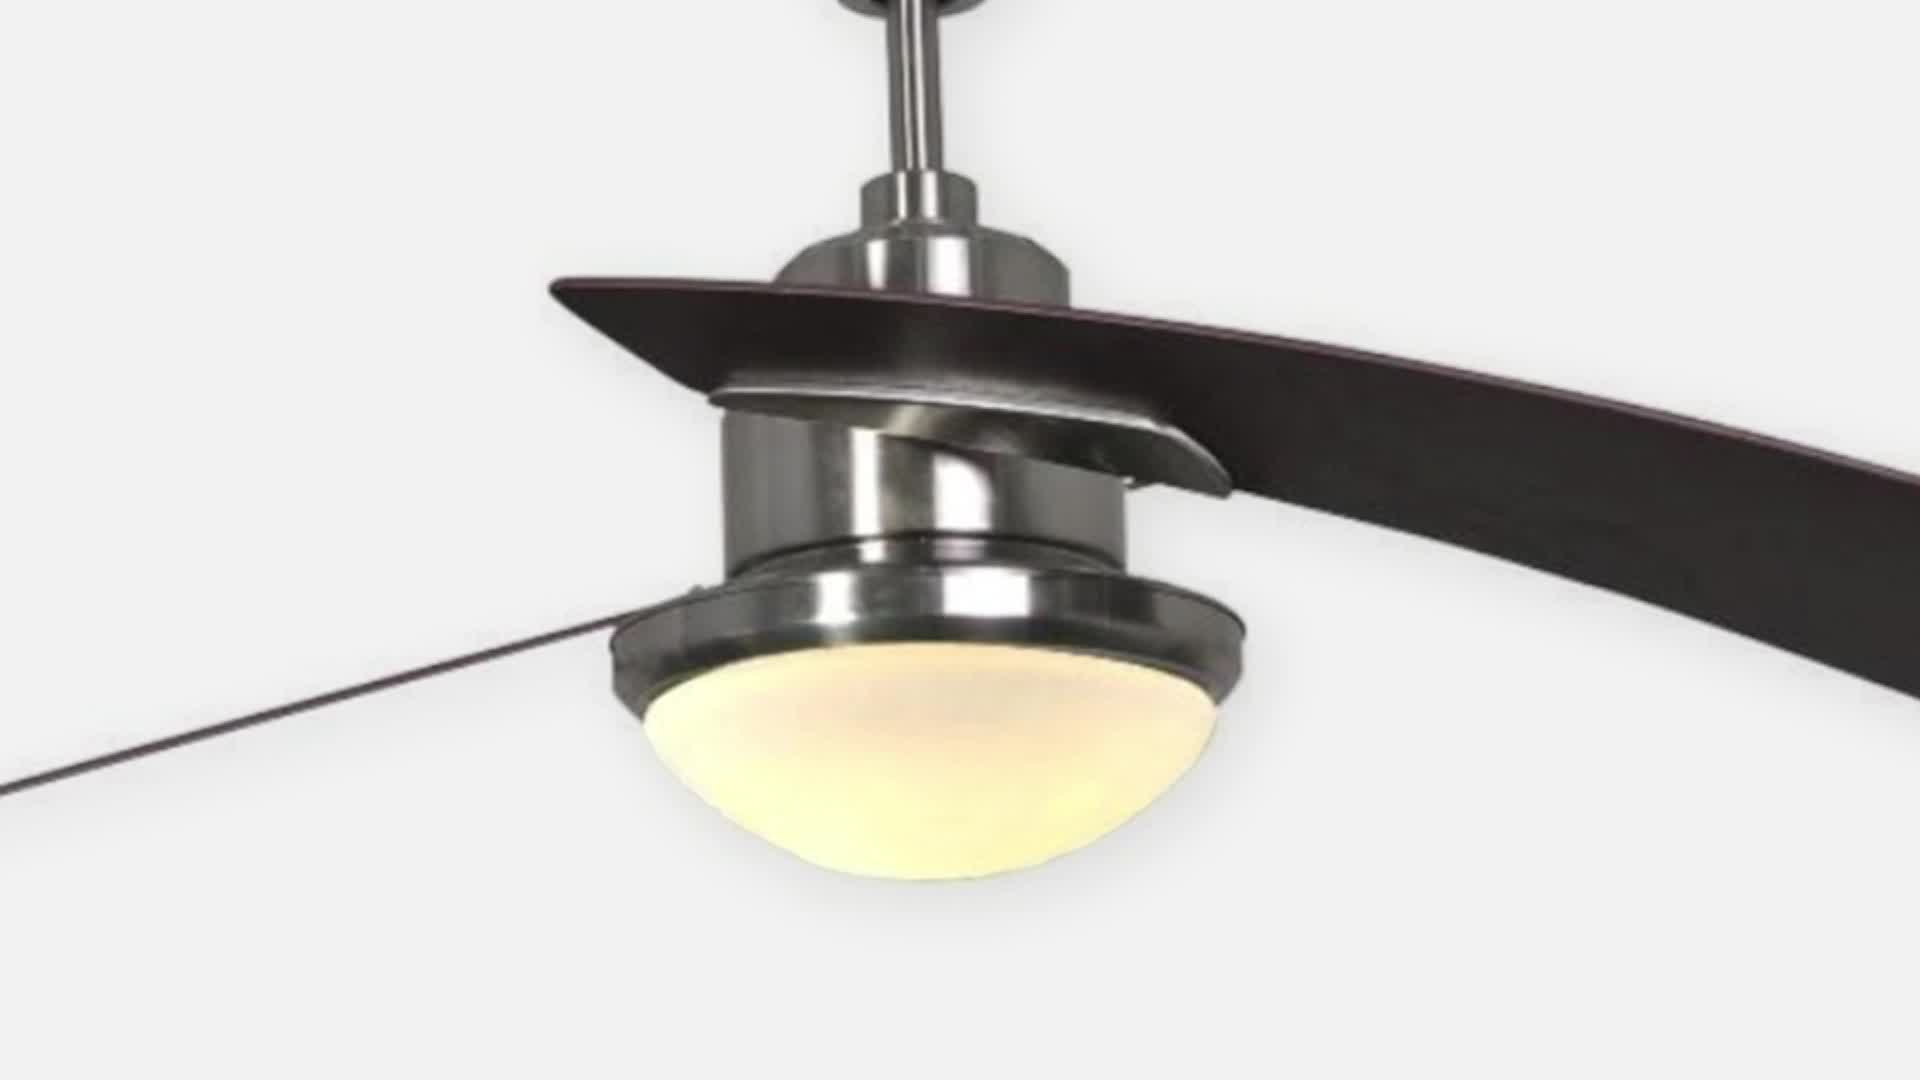 70k Ceiling Fans Recalled Due To Faulty